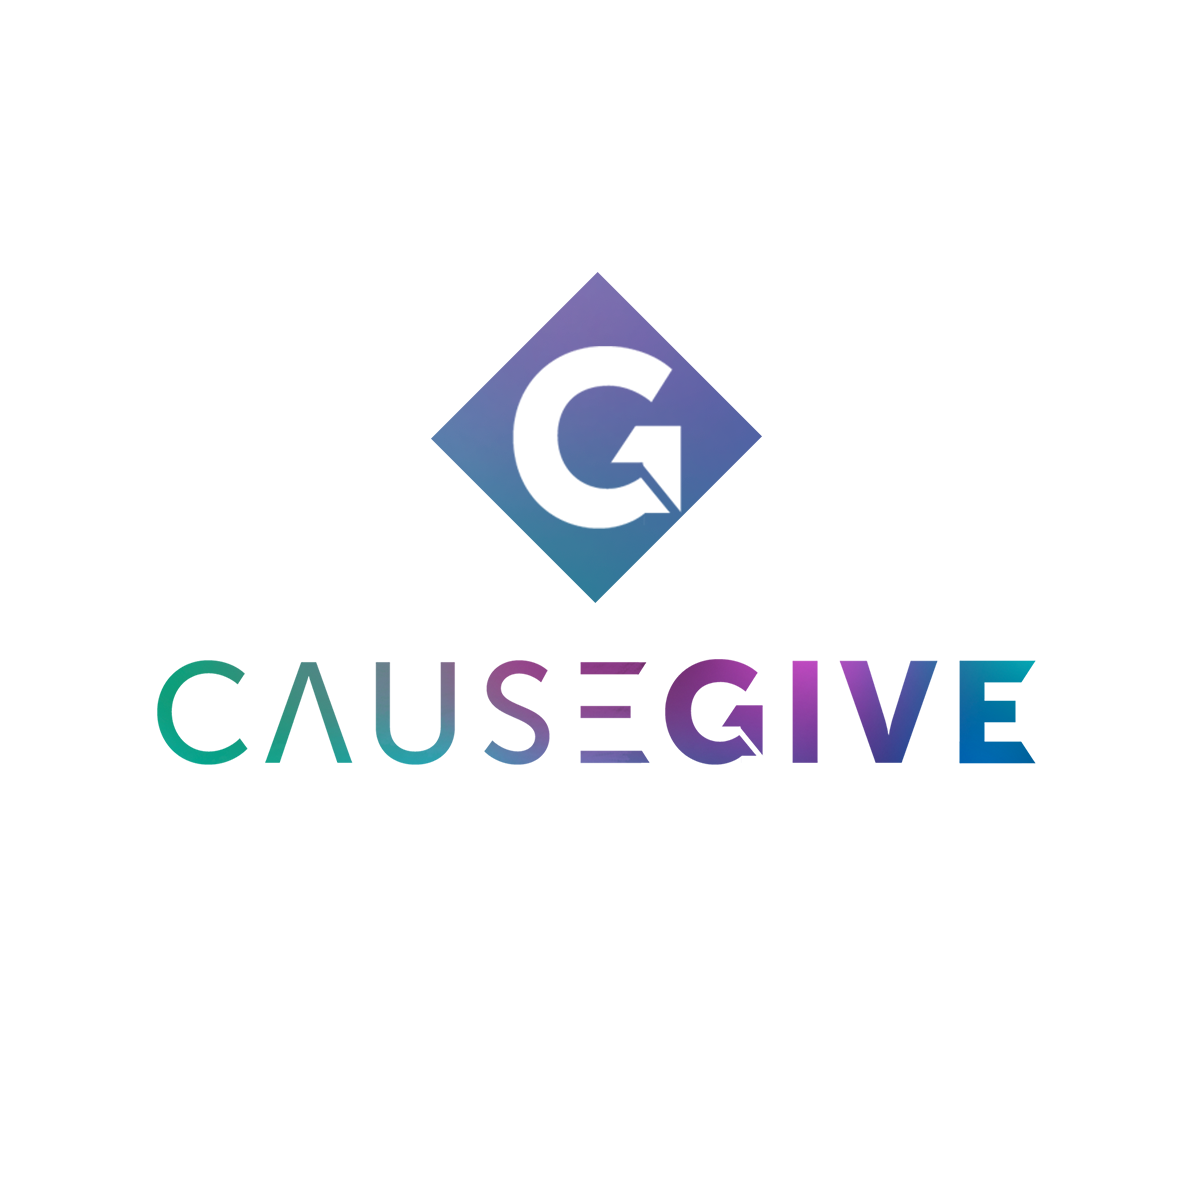 Cause Give